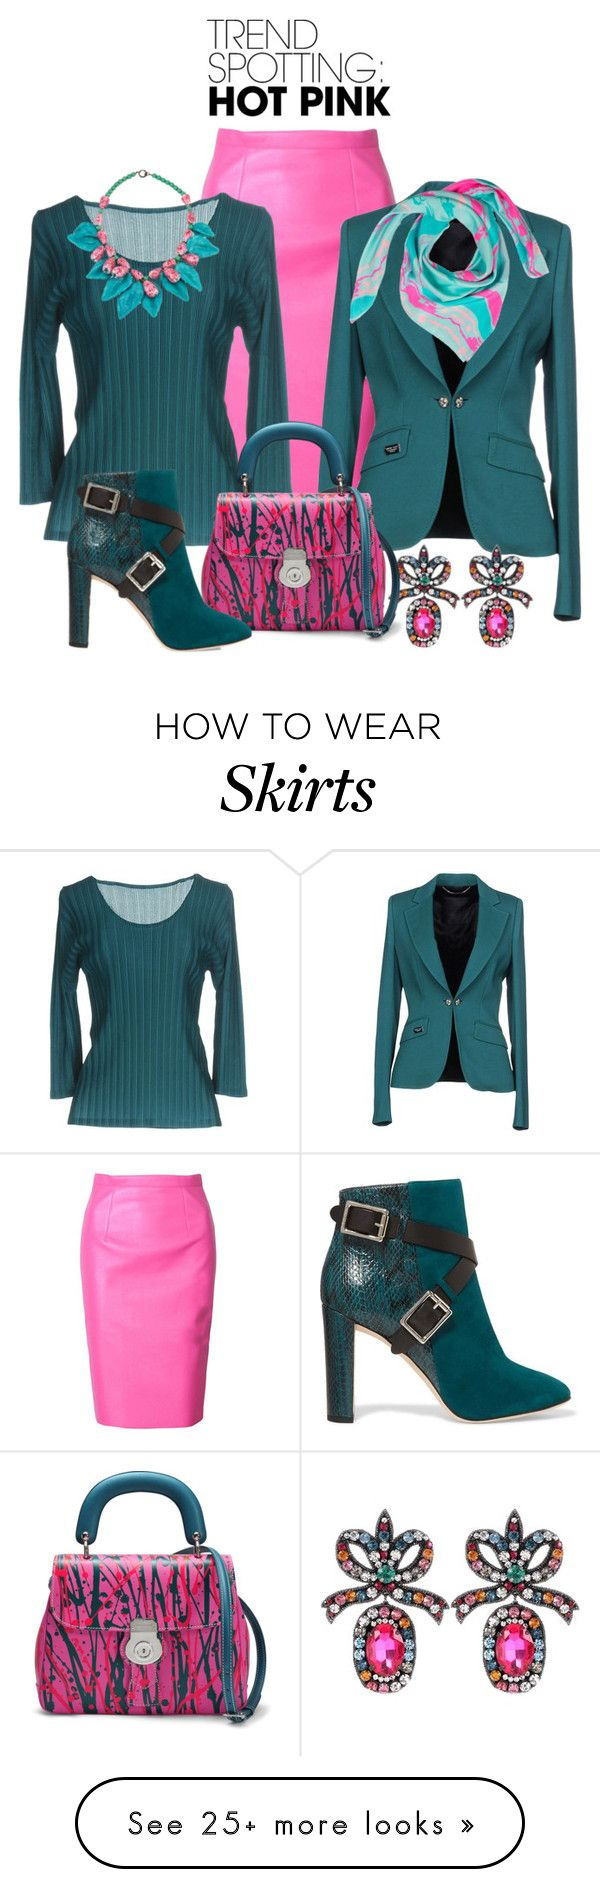 """Pinky Promise You Will Look Good"" by shamrockclover on Polyvore featuring WithChic, Philipp Plein, Gucci, Pleats Please by Issey Miyake, Burberry, Jimmy Choo, Liz Nehdi, contestentry, emeraldgreen and winterscarf"